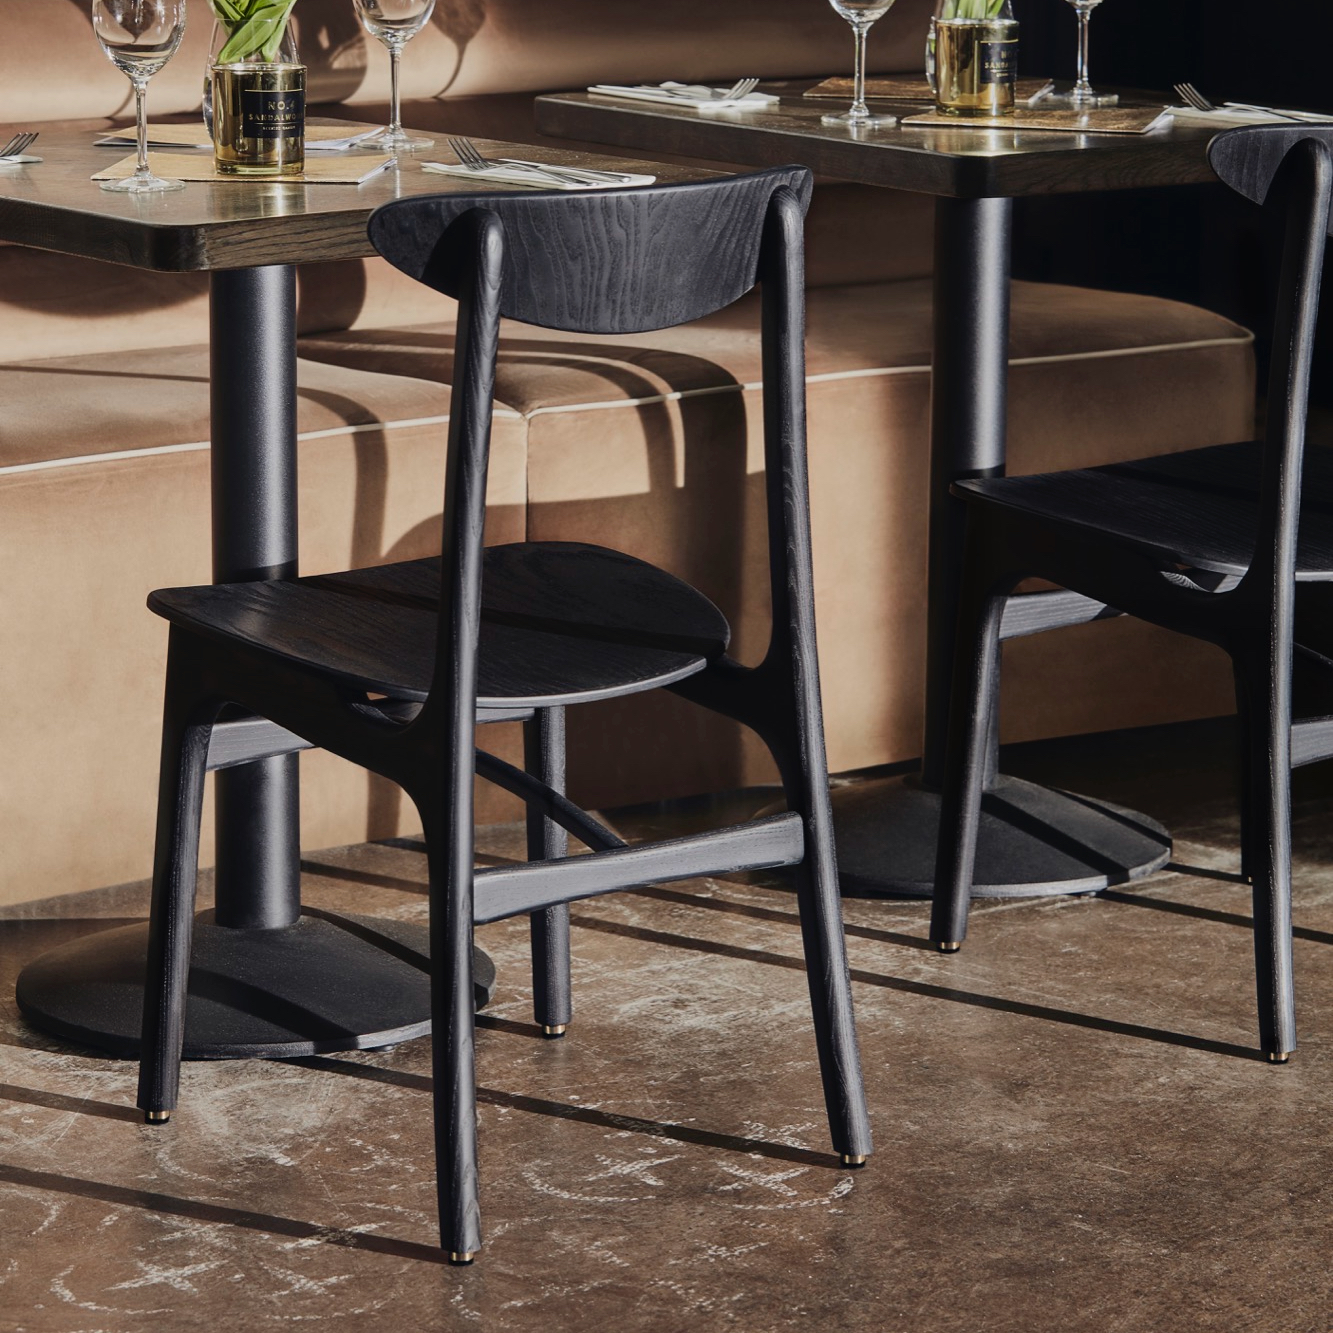 200-190-Chair-Timber-W04-in-Restaurant-002